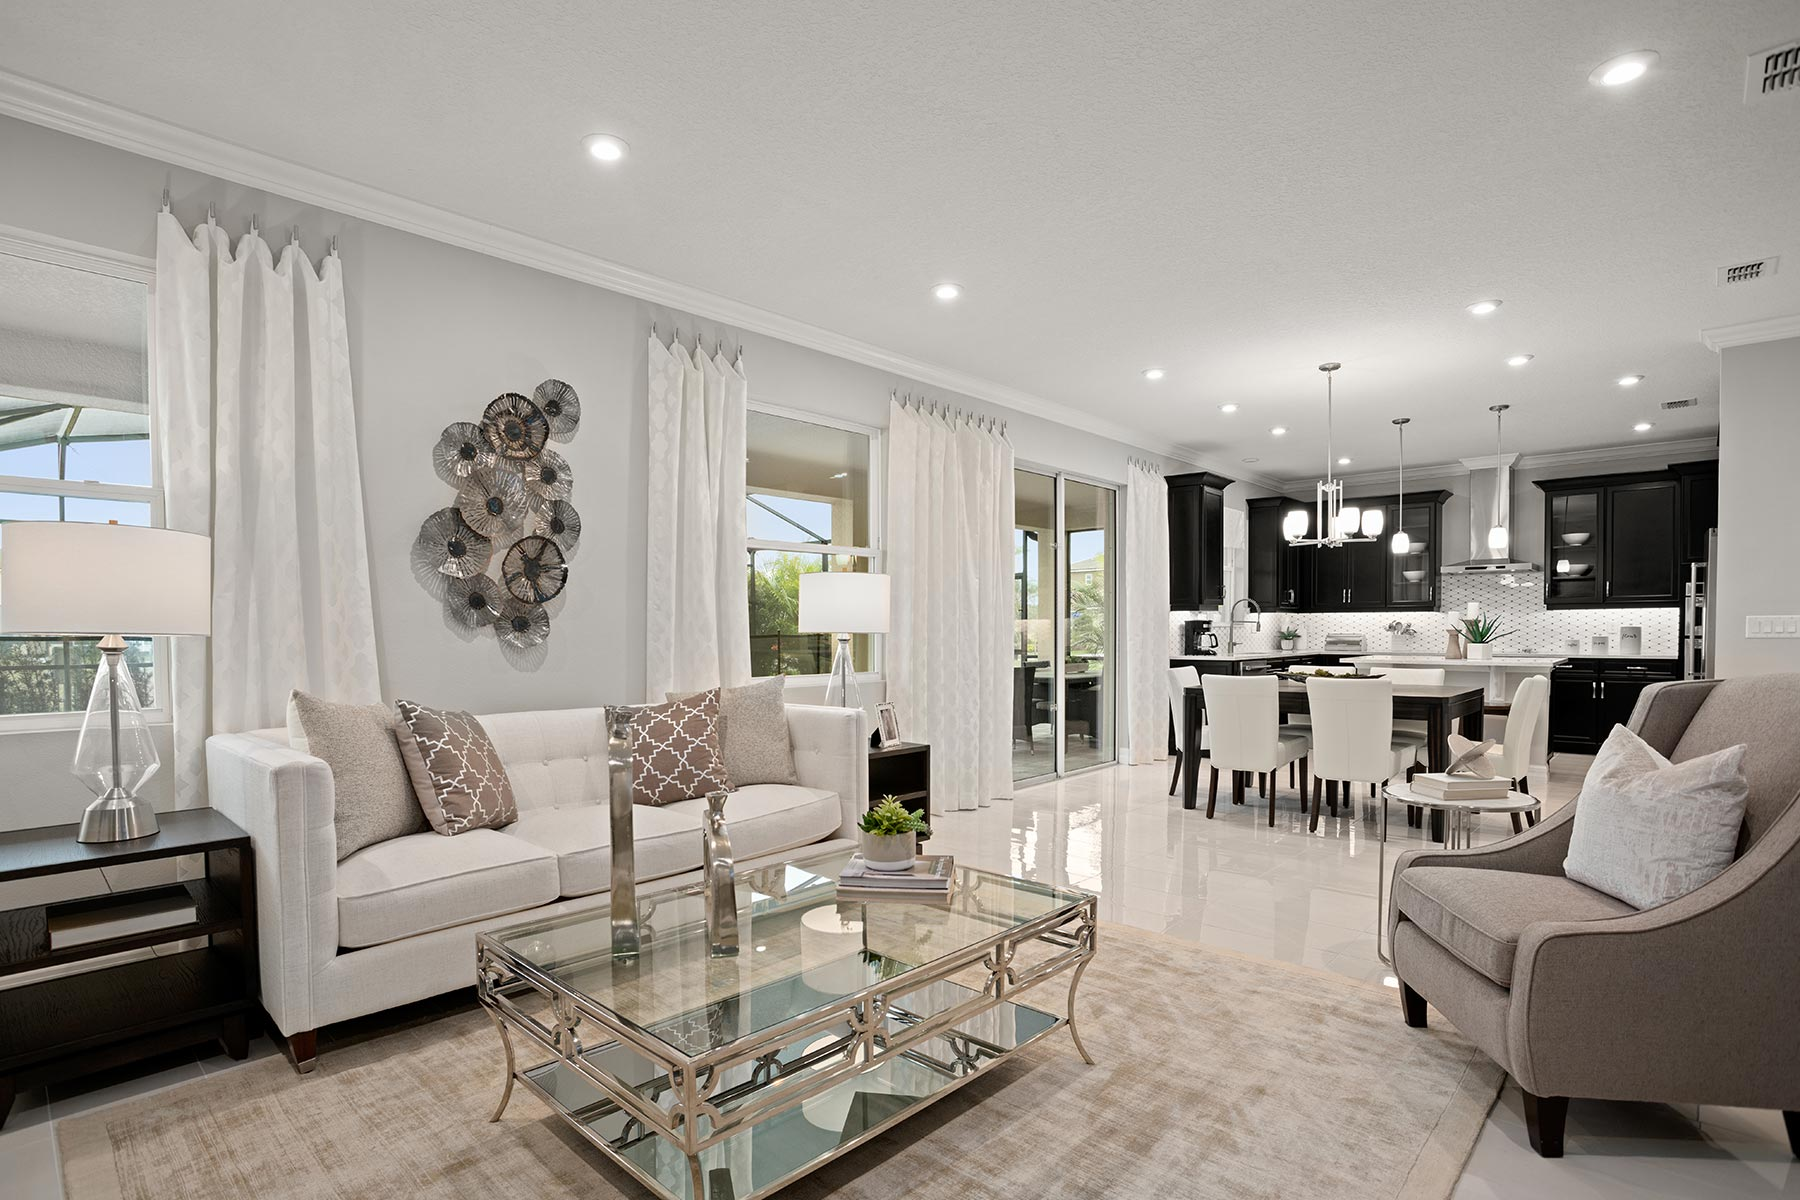 Winthrop Plan Greatroom at Tapestry in Kissimmee Florida by Mattamy Homes